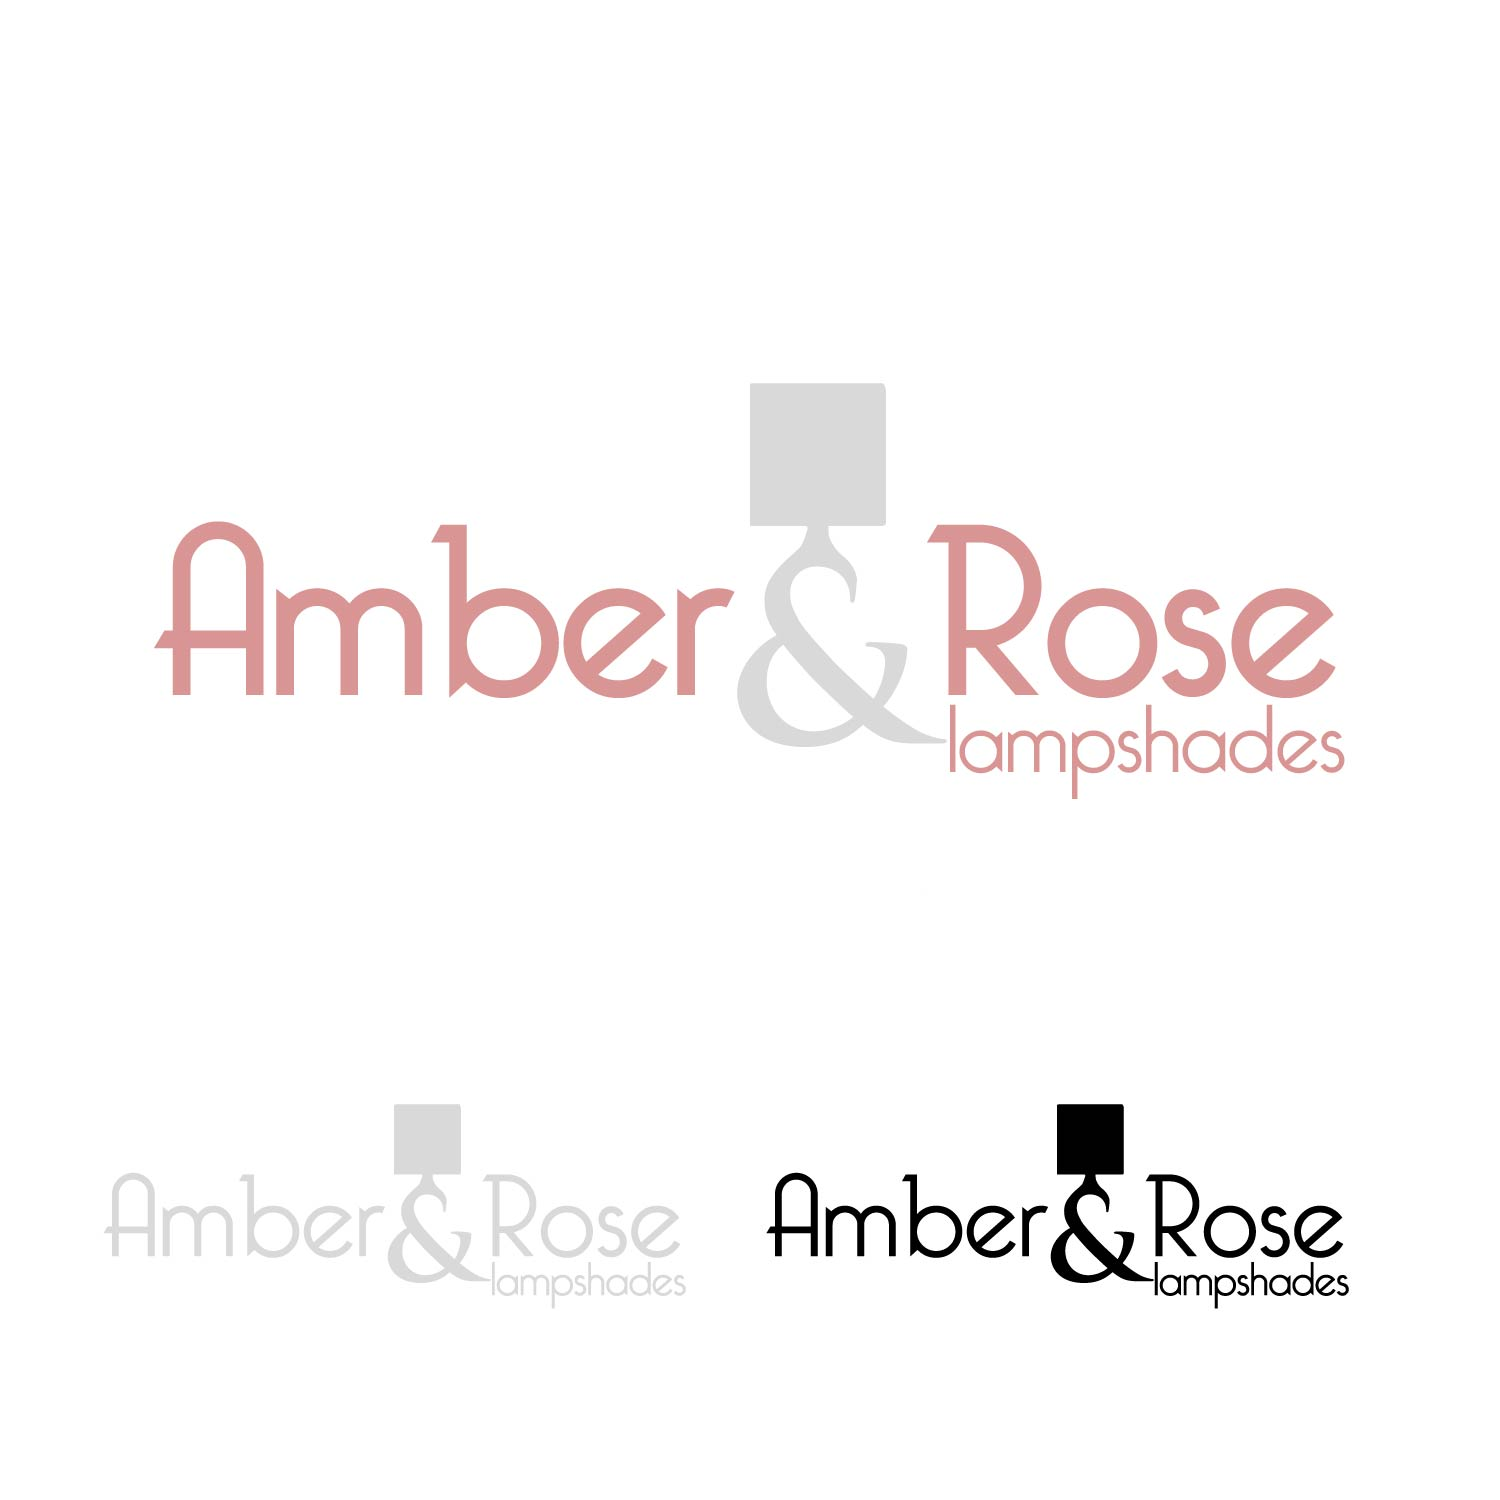 Logo Design by lagalag - Entry No. 29 in the Logo Design Contest Creative Logo Design for Amber & Rose.